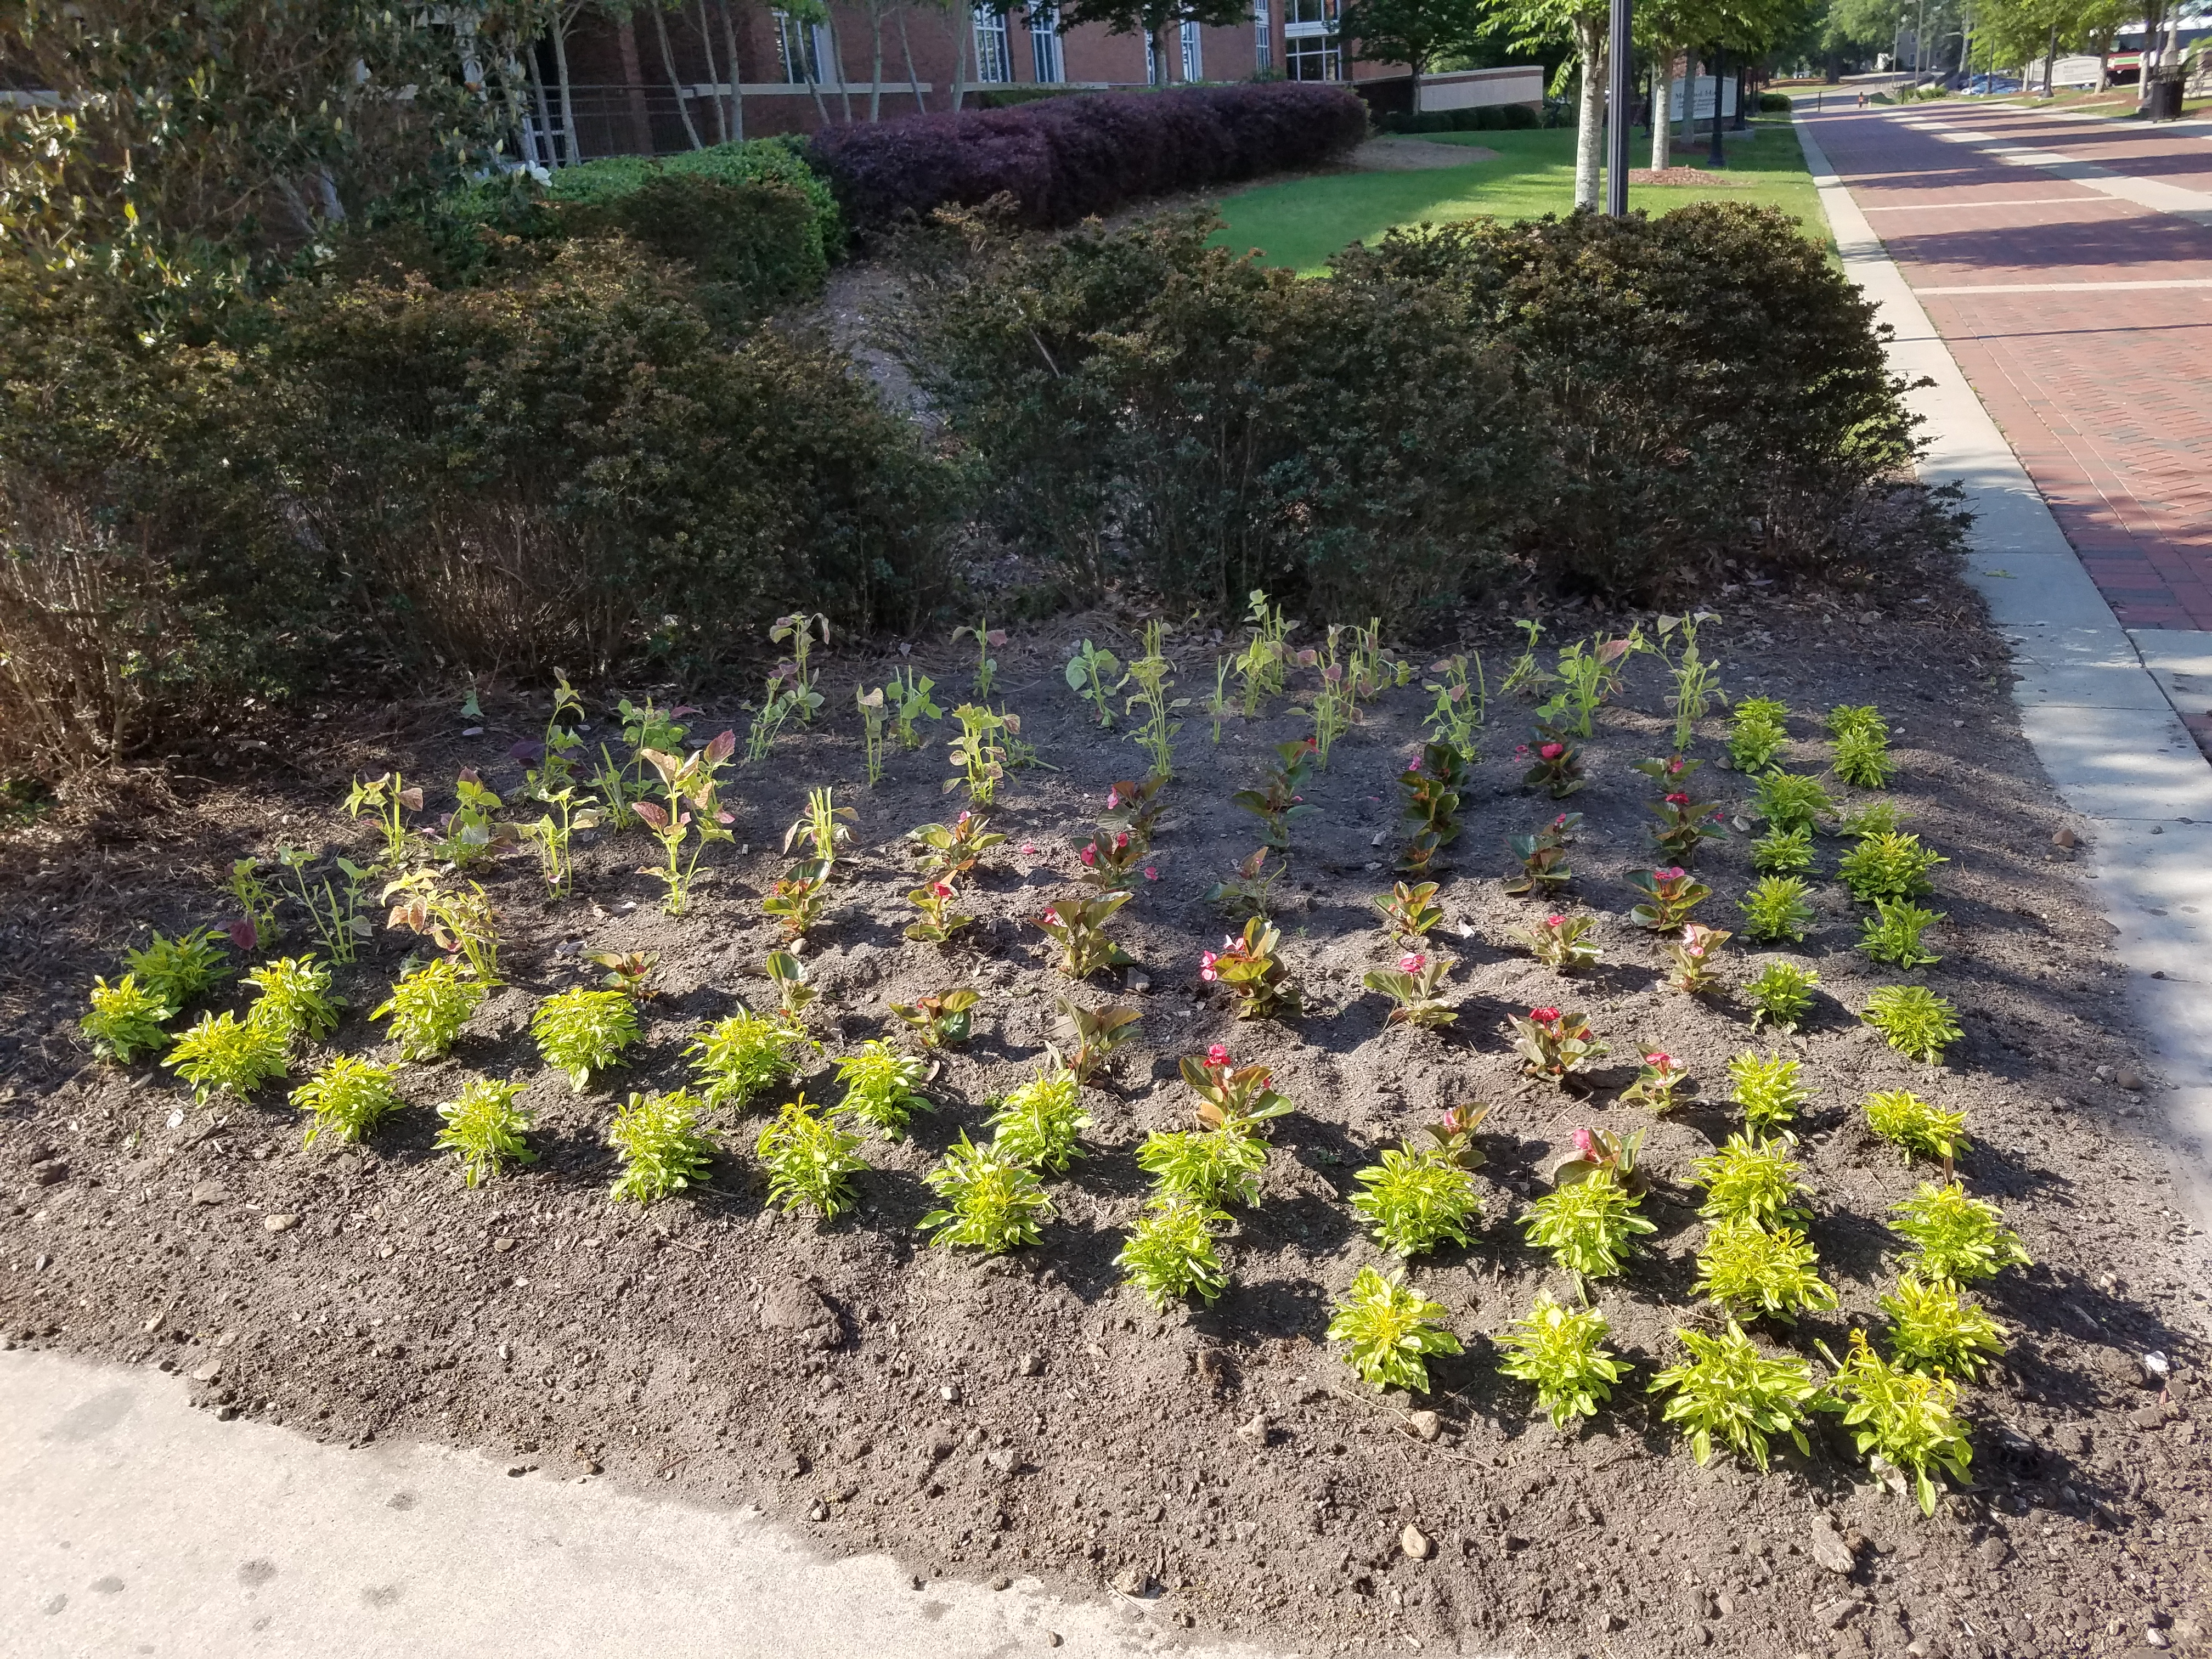 Picture of Planting Annual Flowers in Beds